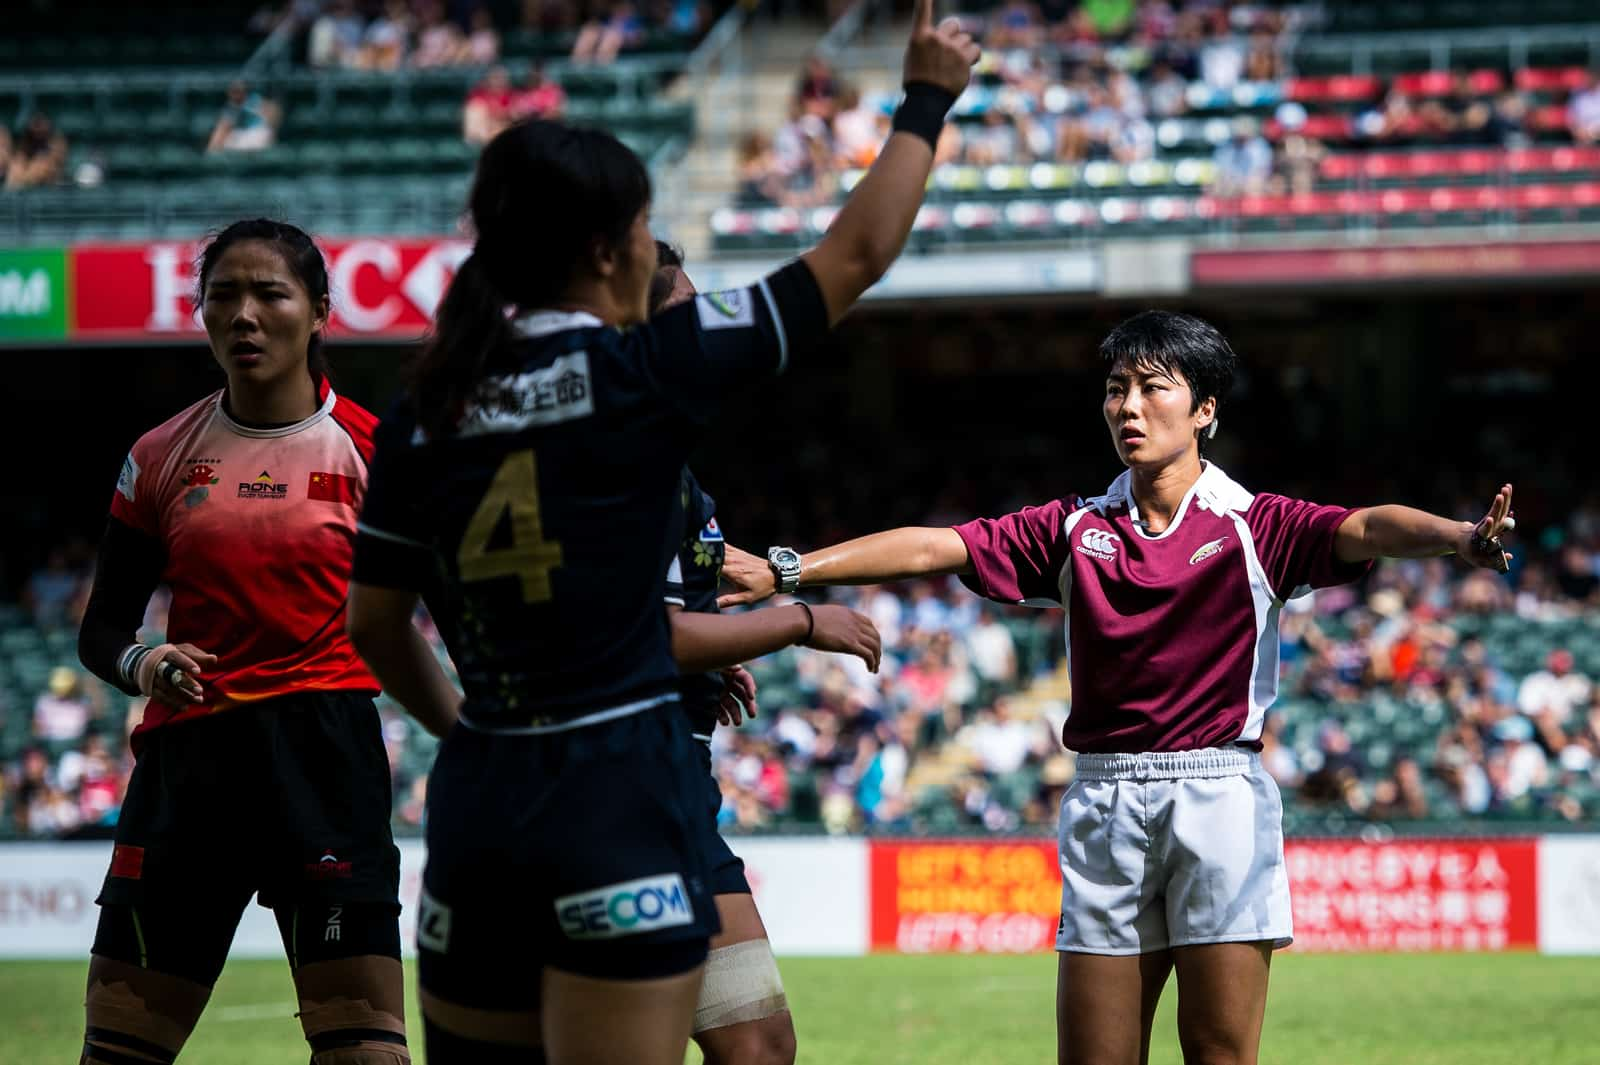 2015 Asia Rugby Sevens Qualifier Day 2 - Men's Pool Games